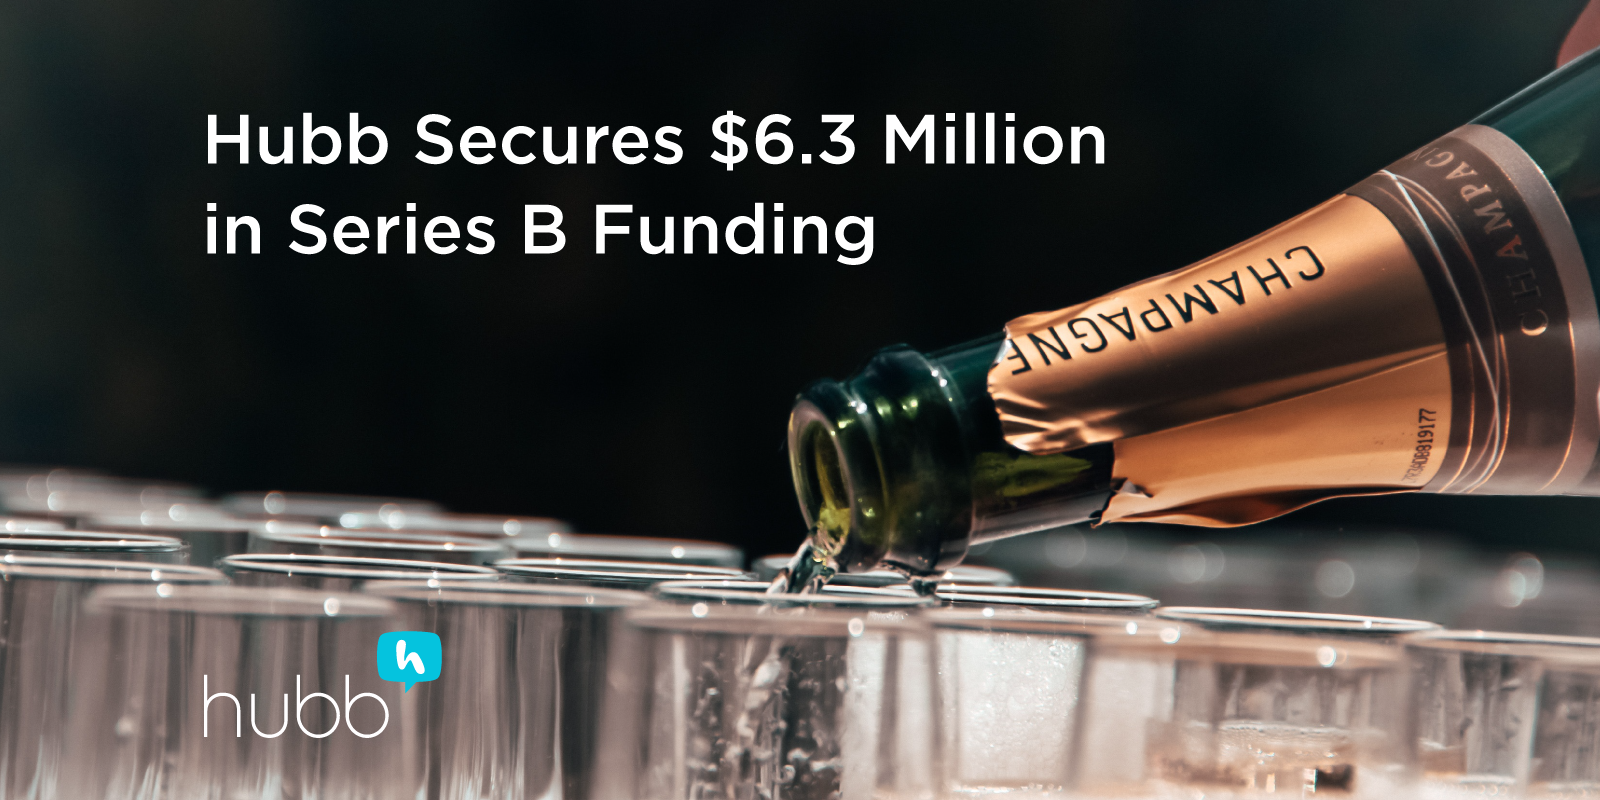 Announcing Hubb's Series B funding round